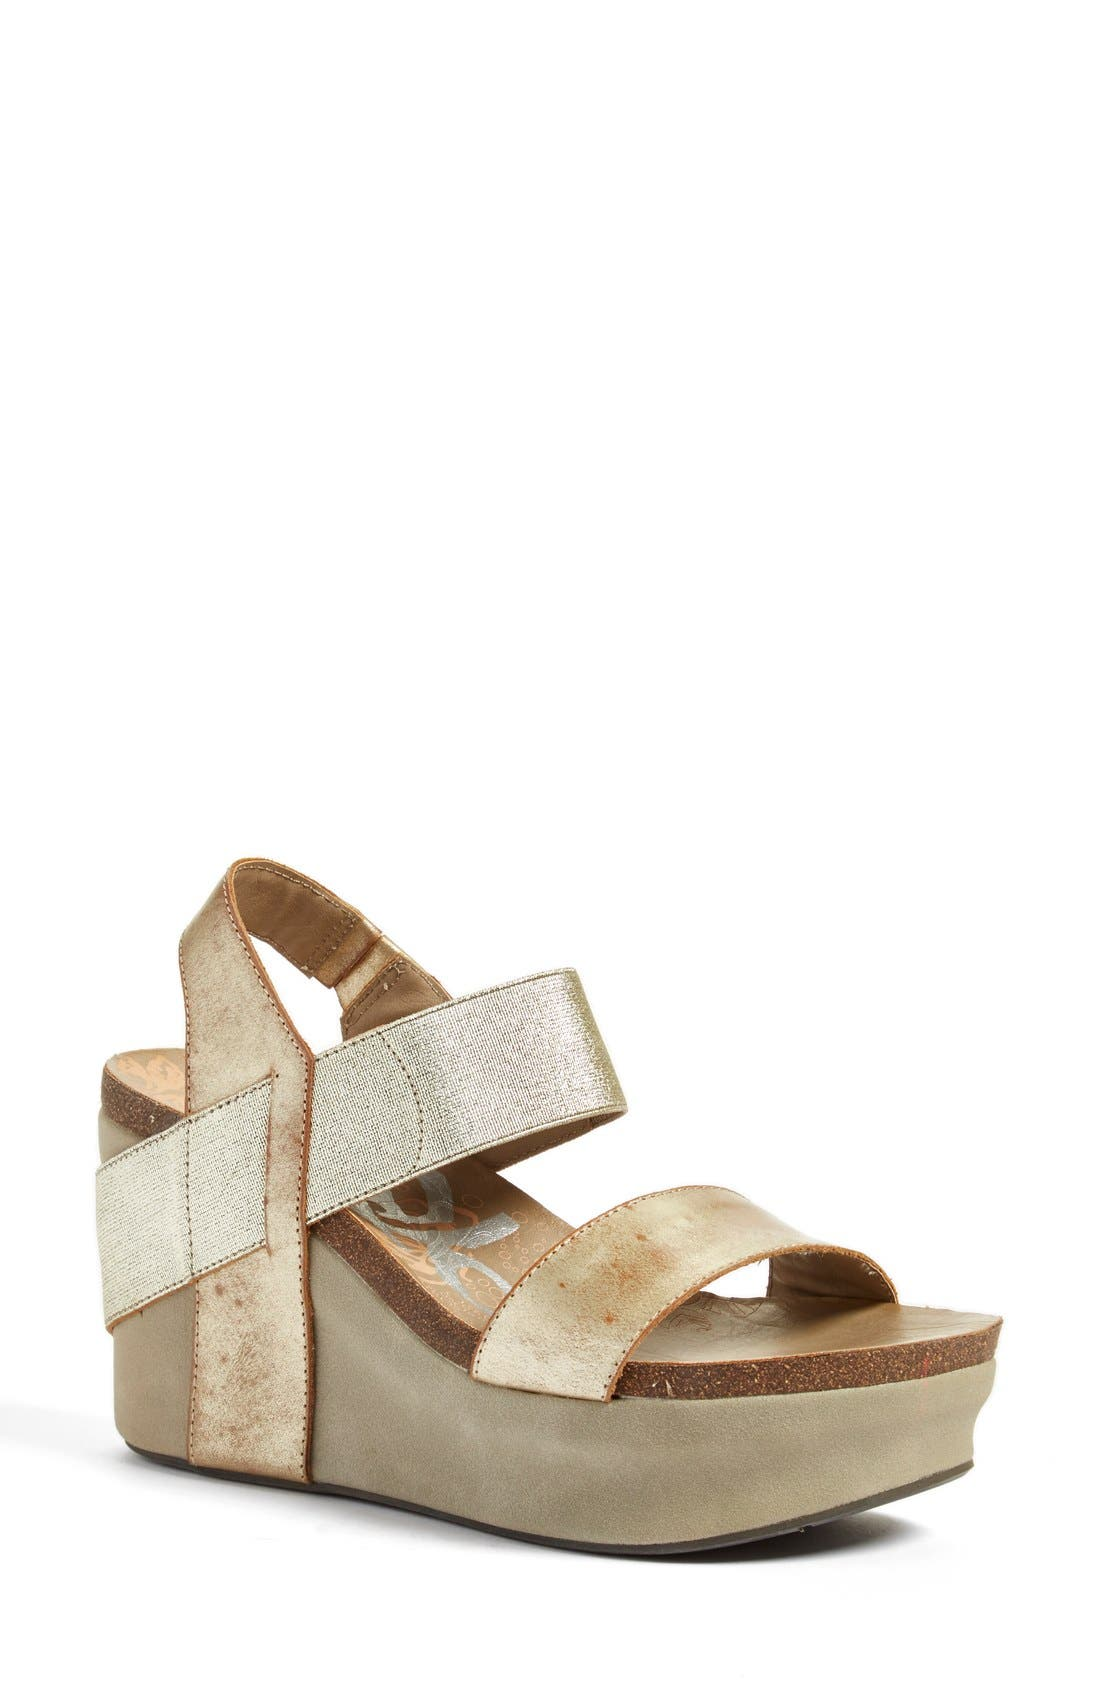 'Bushnell' Wedge Sandal,                         Main,                         color, Gold